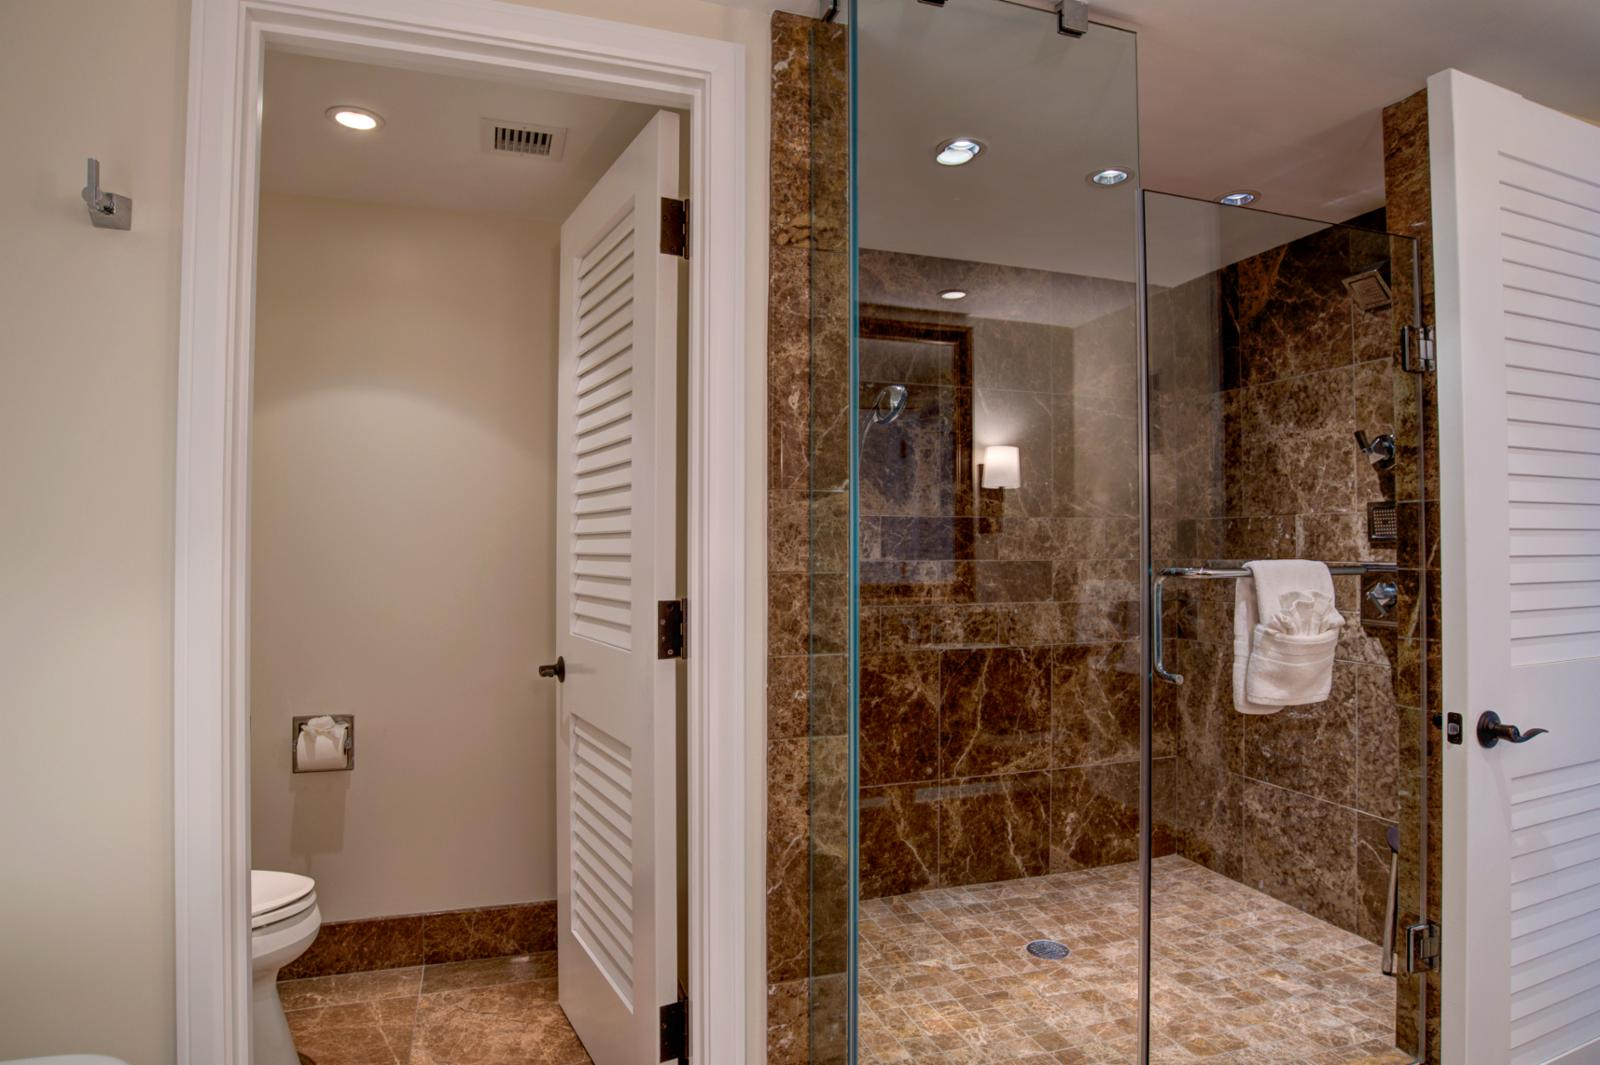 Floor to ceiling glass enclosed show with dual shower heads